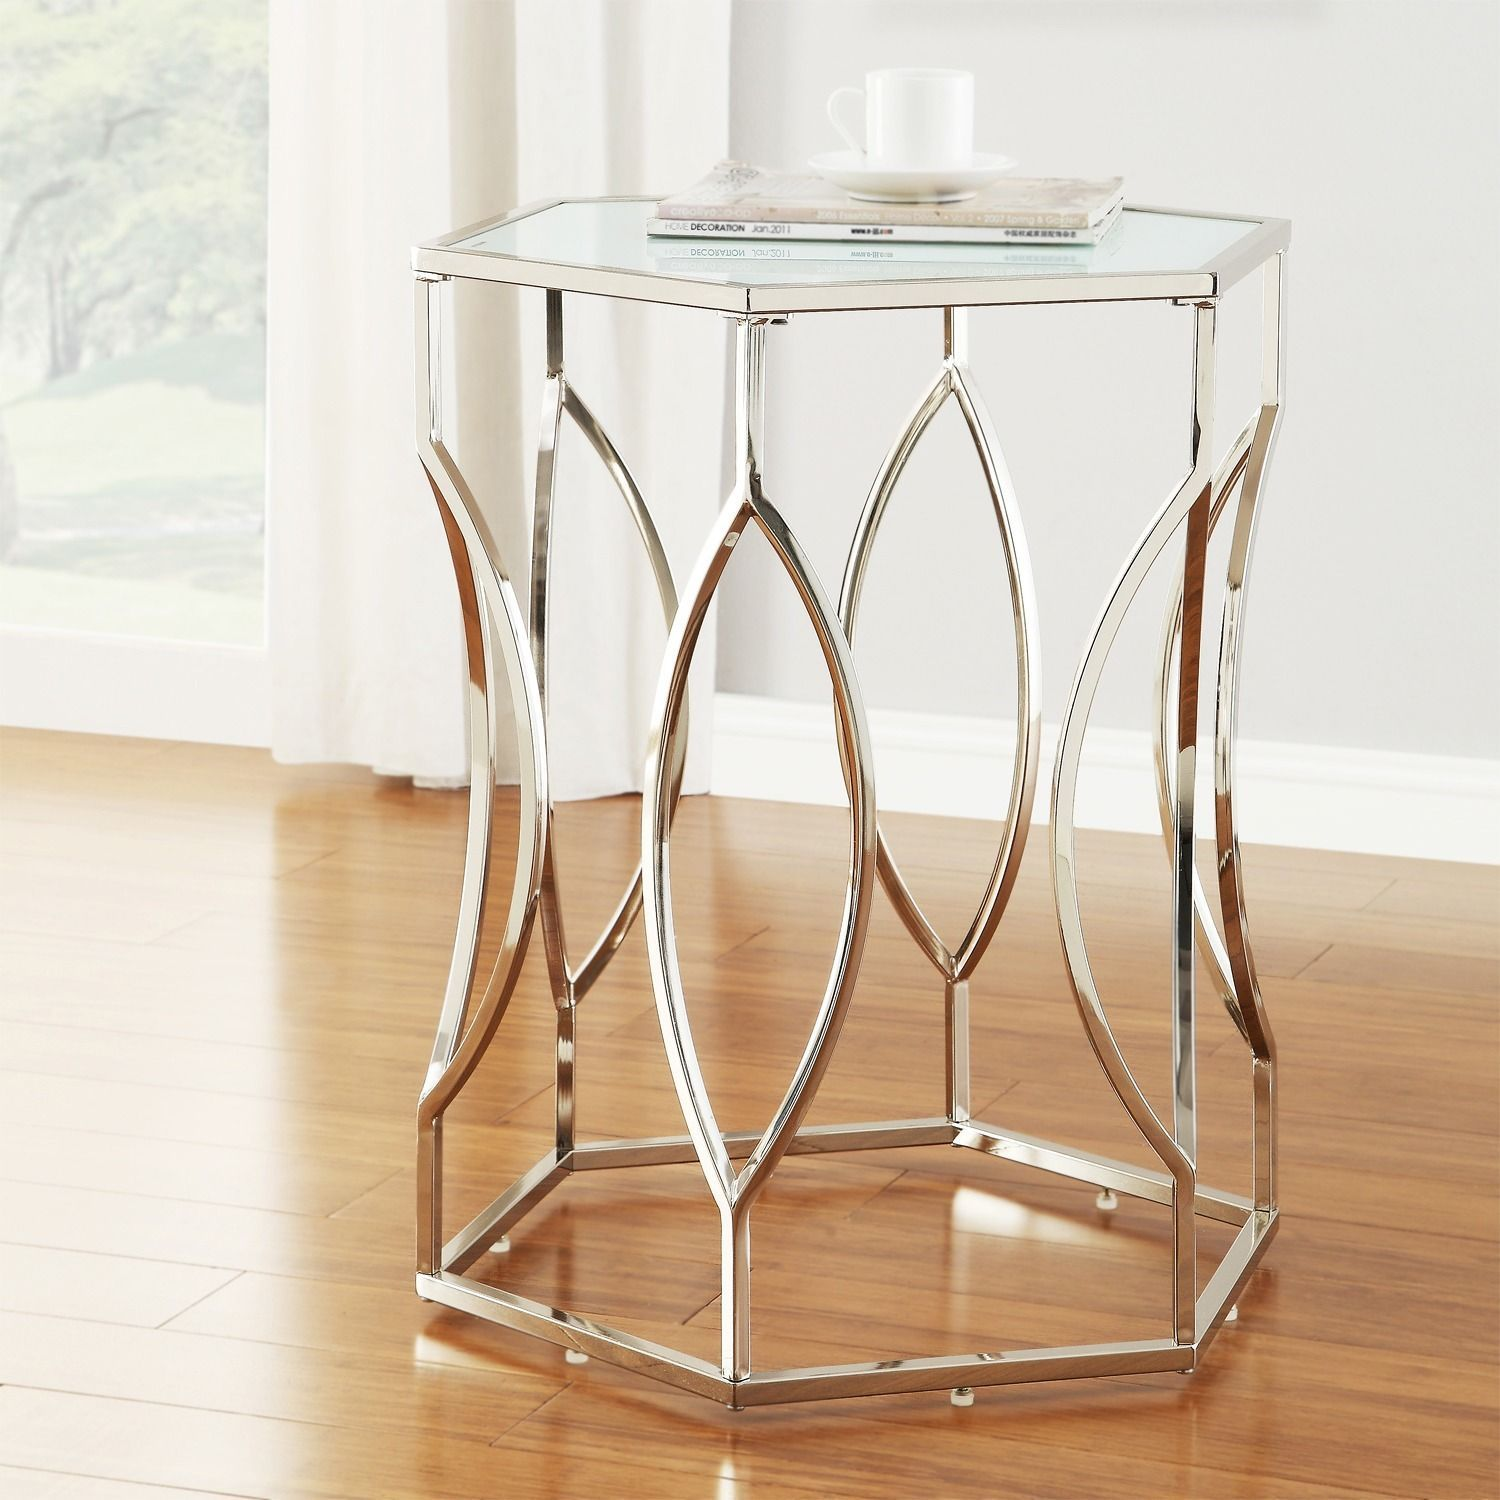 inspire davlin hexagonal metal frosted glass accent end table tables ping great coffee sofa homegoods console bedside dresser second hand kitchens rustic home decor purple